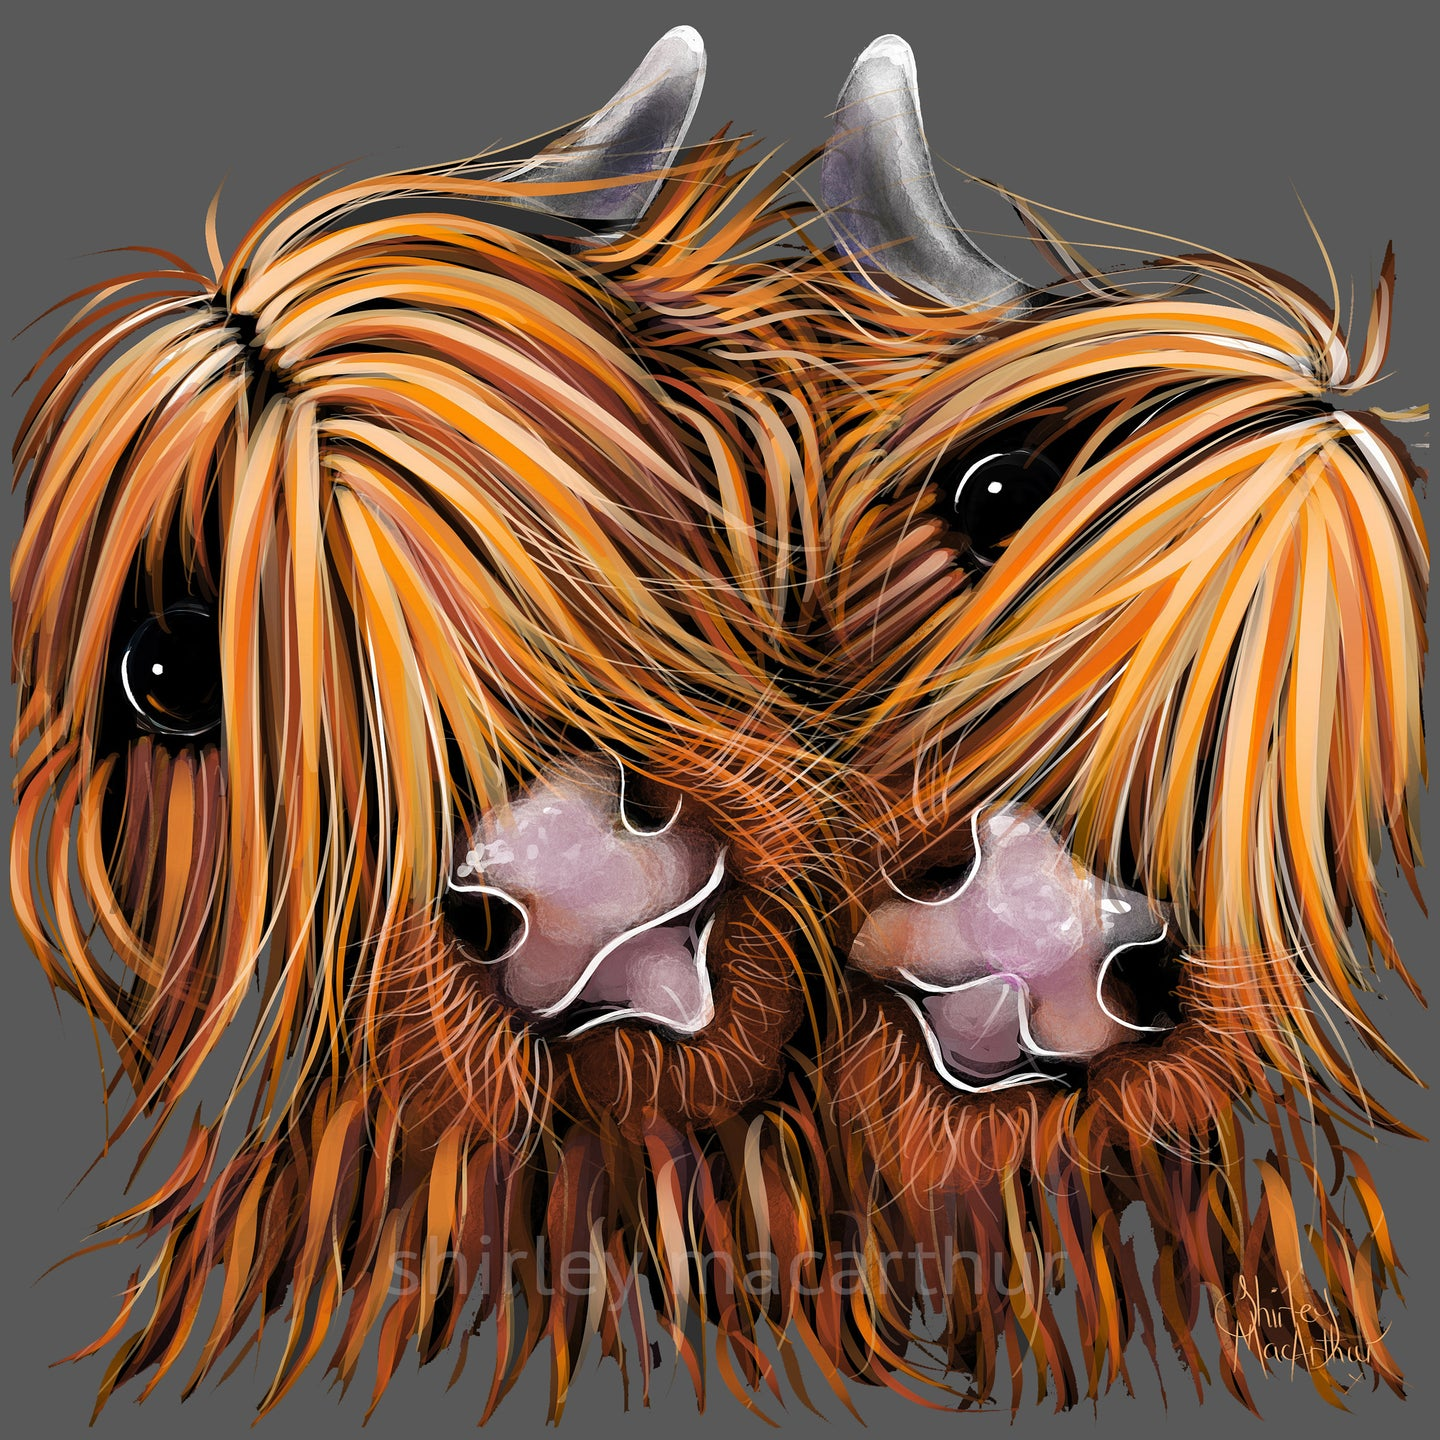 ' RHuBaRB and GiNGeR ' HiGHLaND CoW PRiNT, WaLL ART